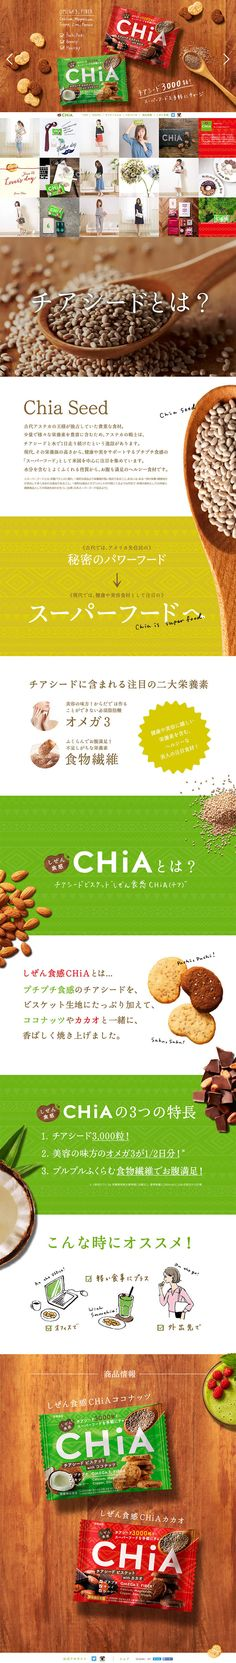 しぜん食感 CHiA【健康・美容食品関連】のLPデザイン。WEBデザイナーさん必見!ランディングページのデザイン参考に(かわいい系) Food Web Design, Best Web Design, Web Layout, Layout Design, Digital Web, Japanese Poster, Japan Design, Landing Page Design, Website Design Inspiration